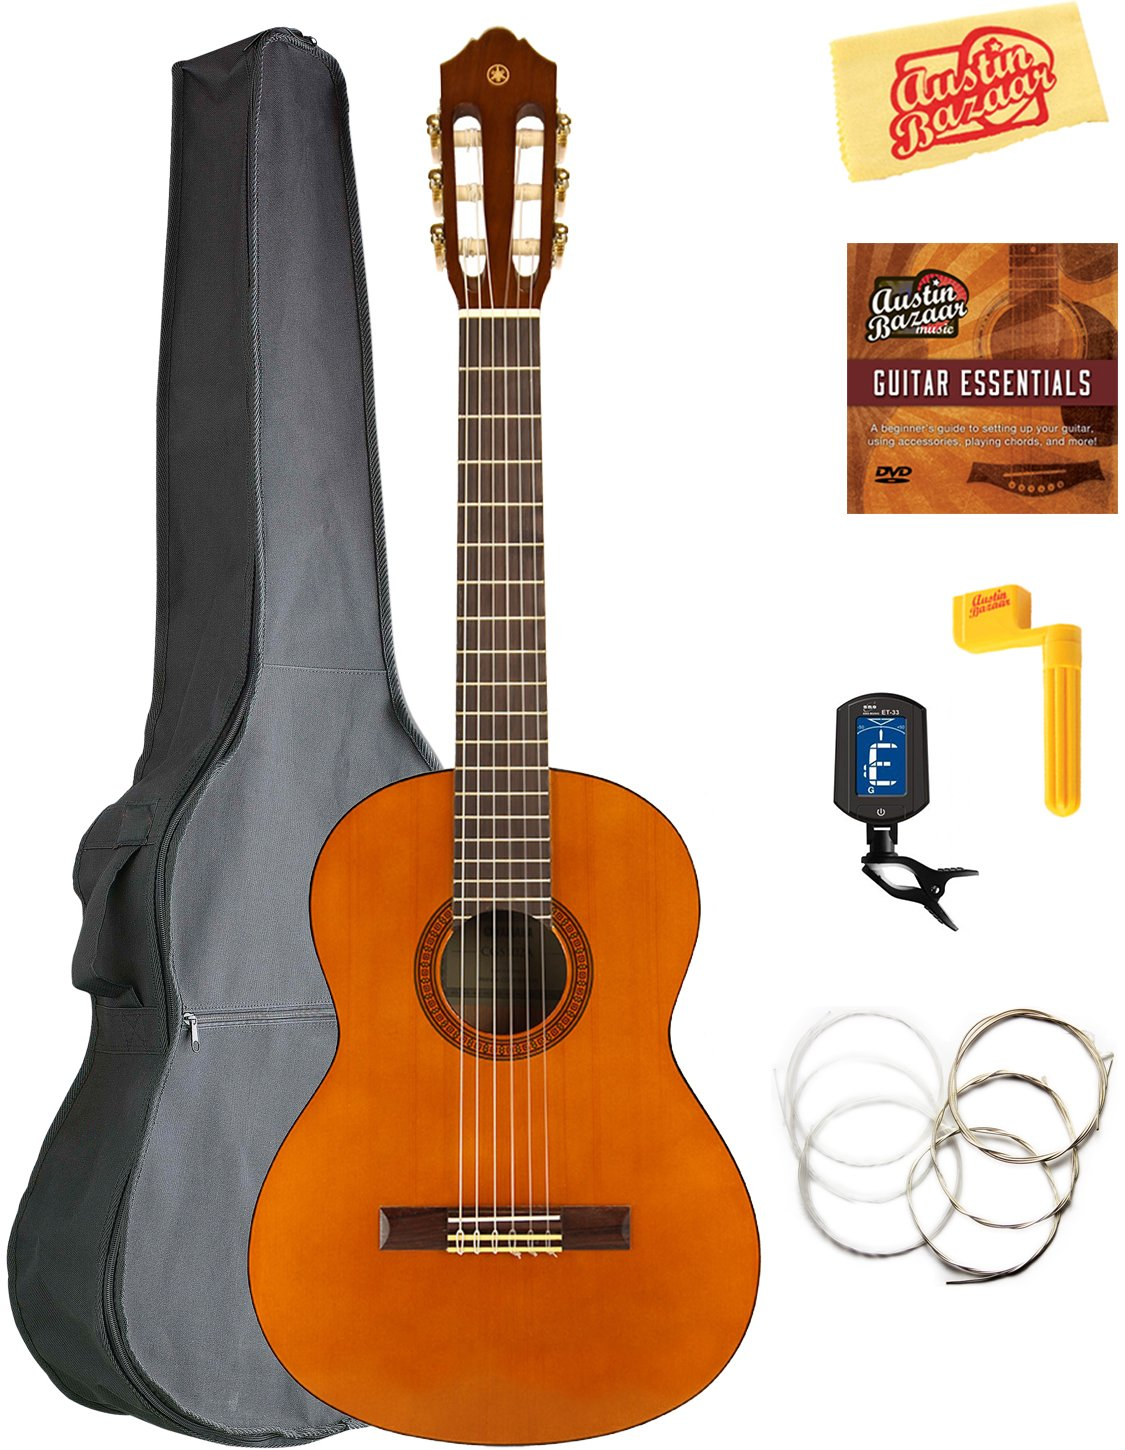 Yamaha CGS102A 1/2-Size Classical Guitar Bundle with Gig Bag, Tuner, Strings, String Winder, Austin Bazaar Instructional DVD, and Polishing Cloth by YAMAHA